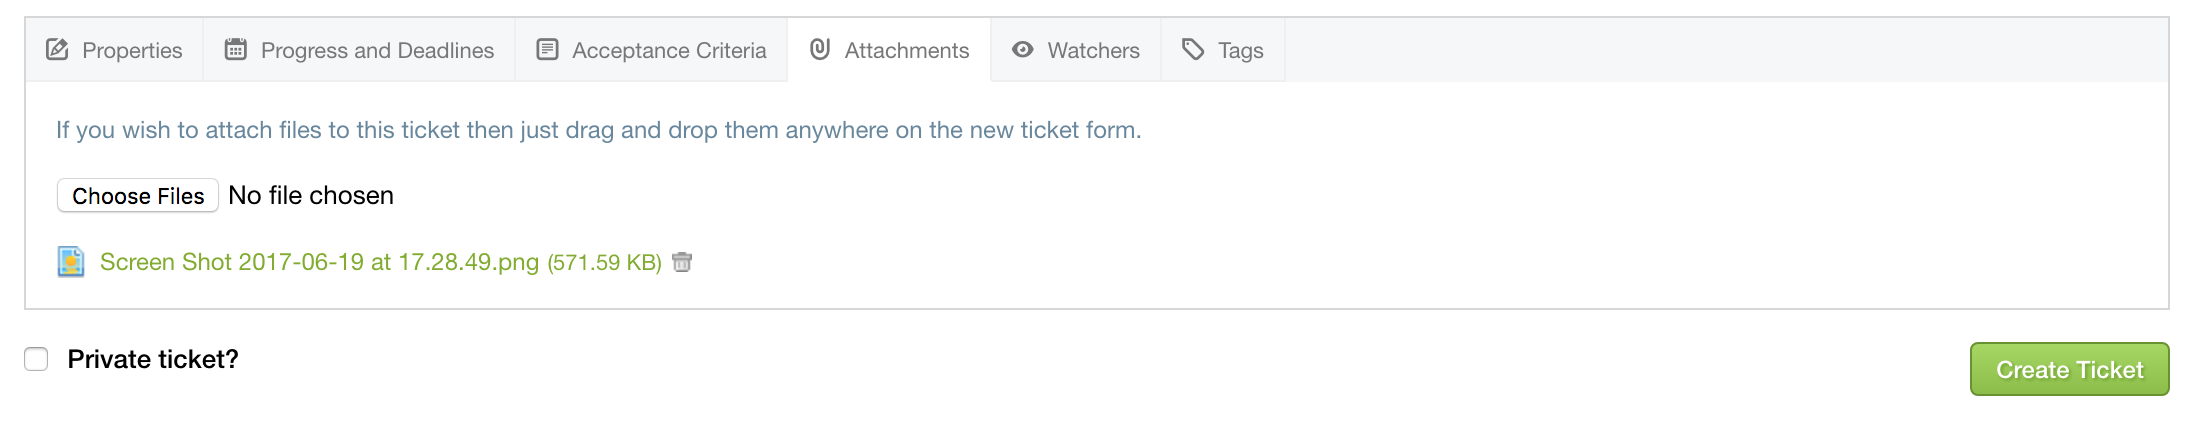 Adding an attachment to a ticket